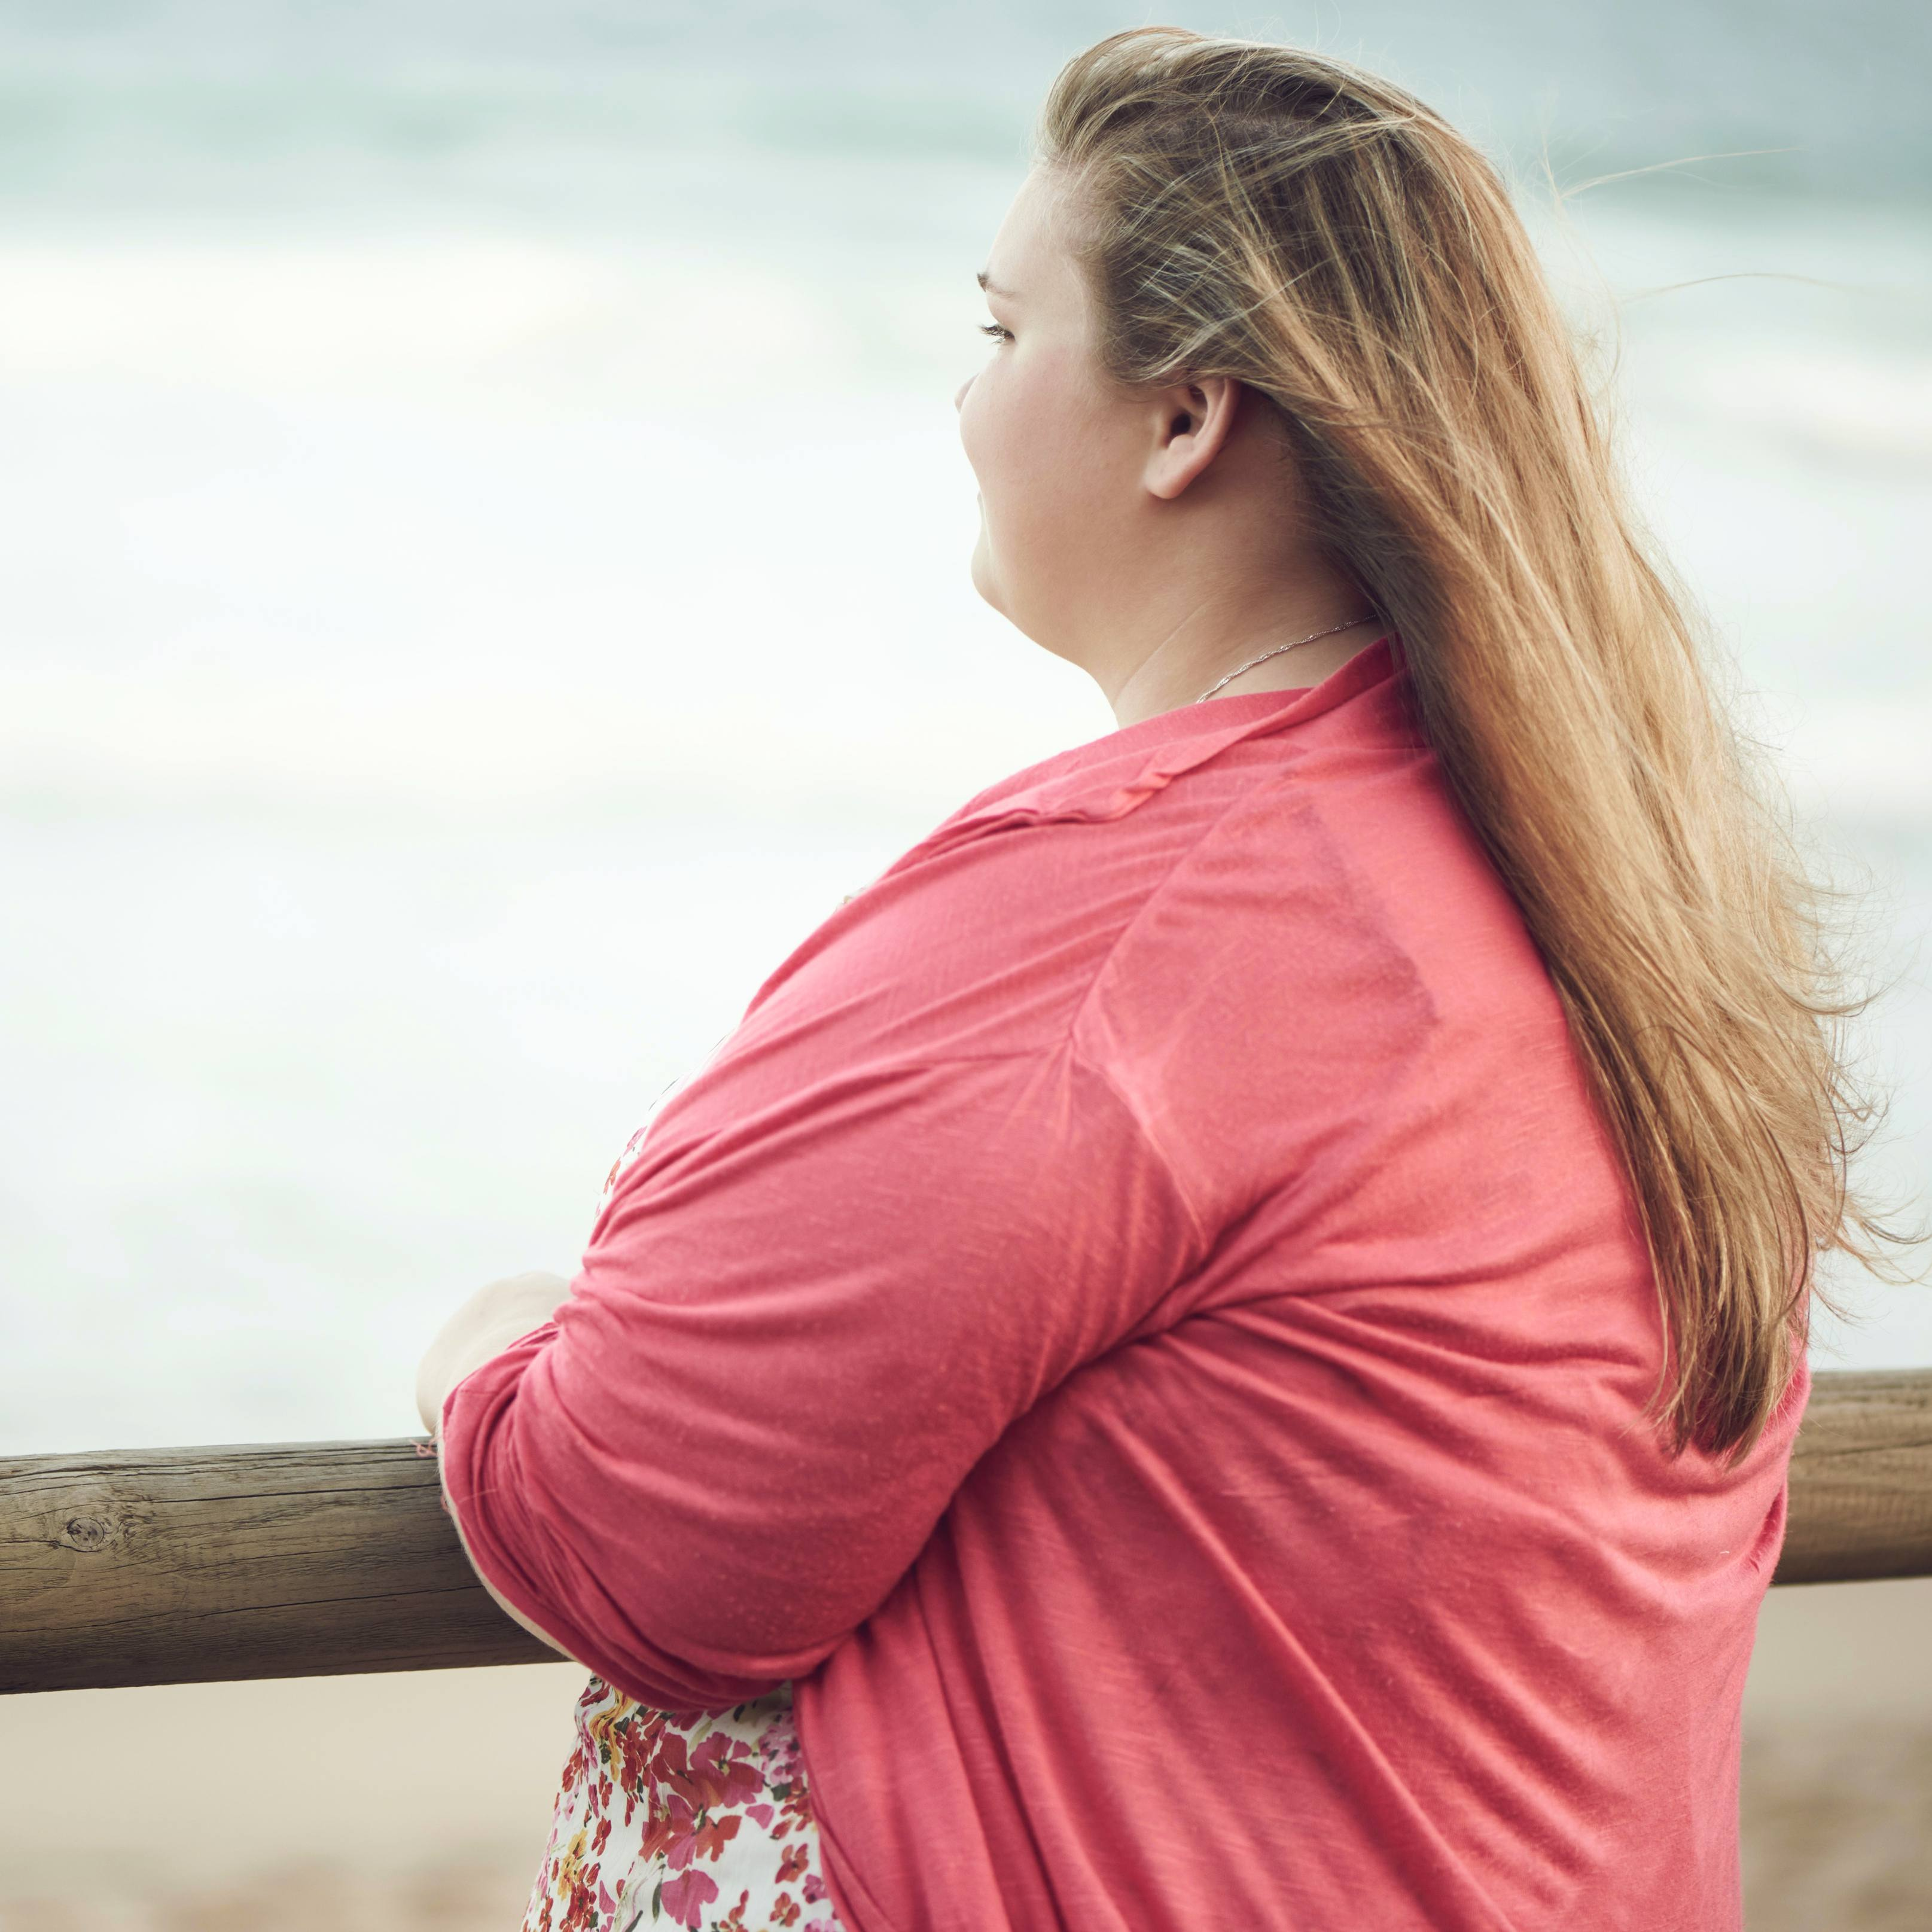 young overweight obese woman looking out at the ocean